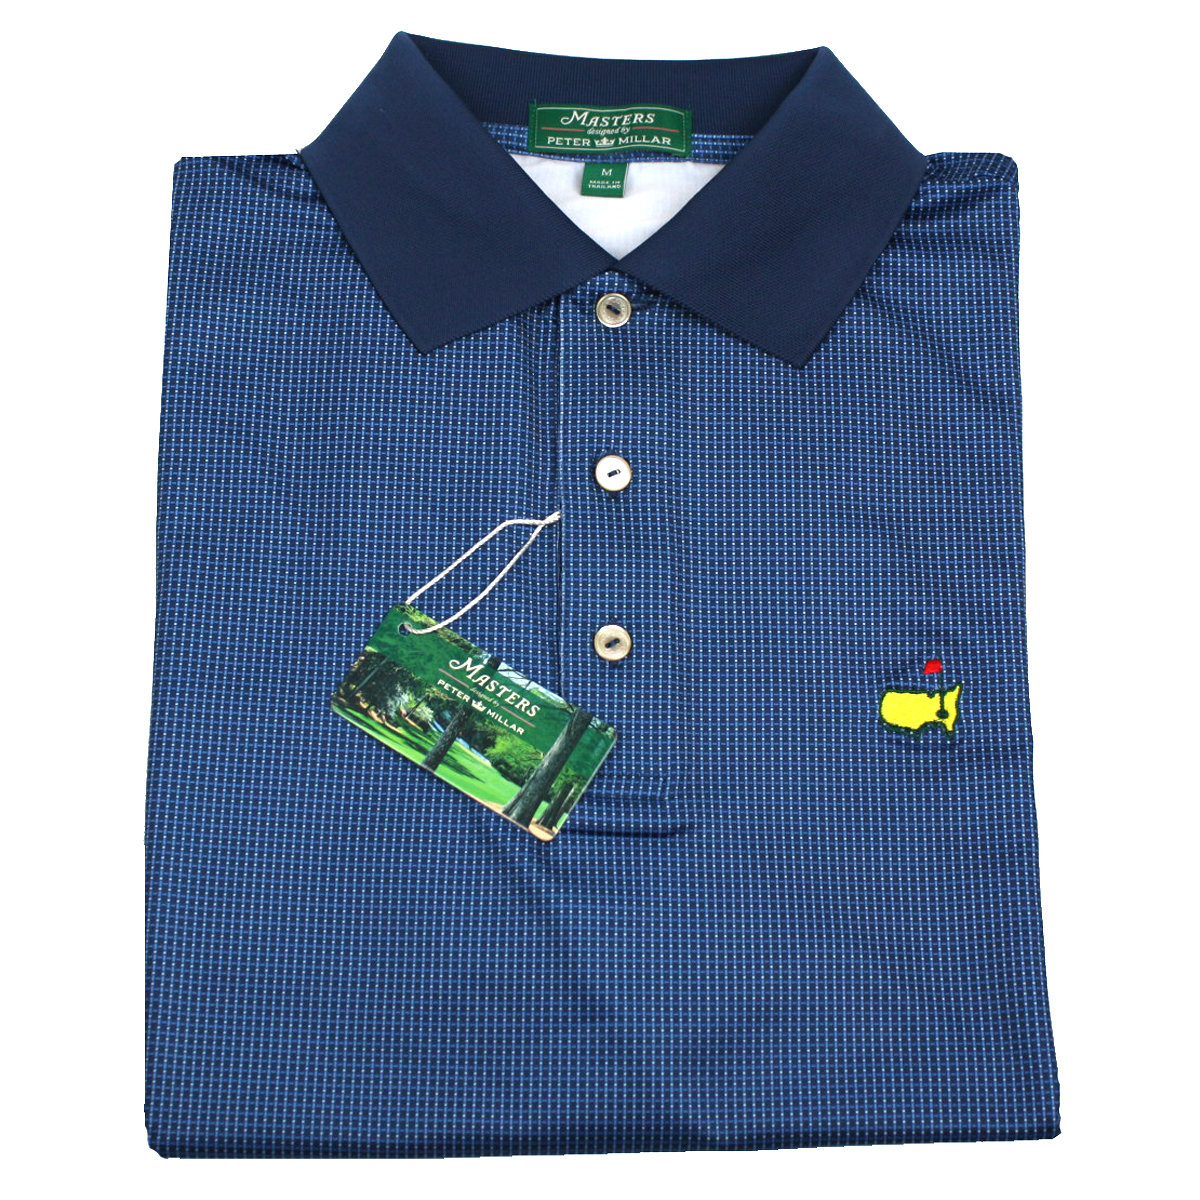 Peter millar clubhouse navy dot new 2014 masters golf shirt for Peter millar women s golf shirts